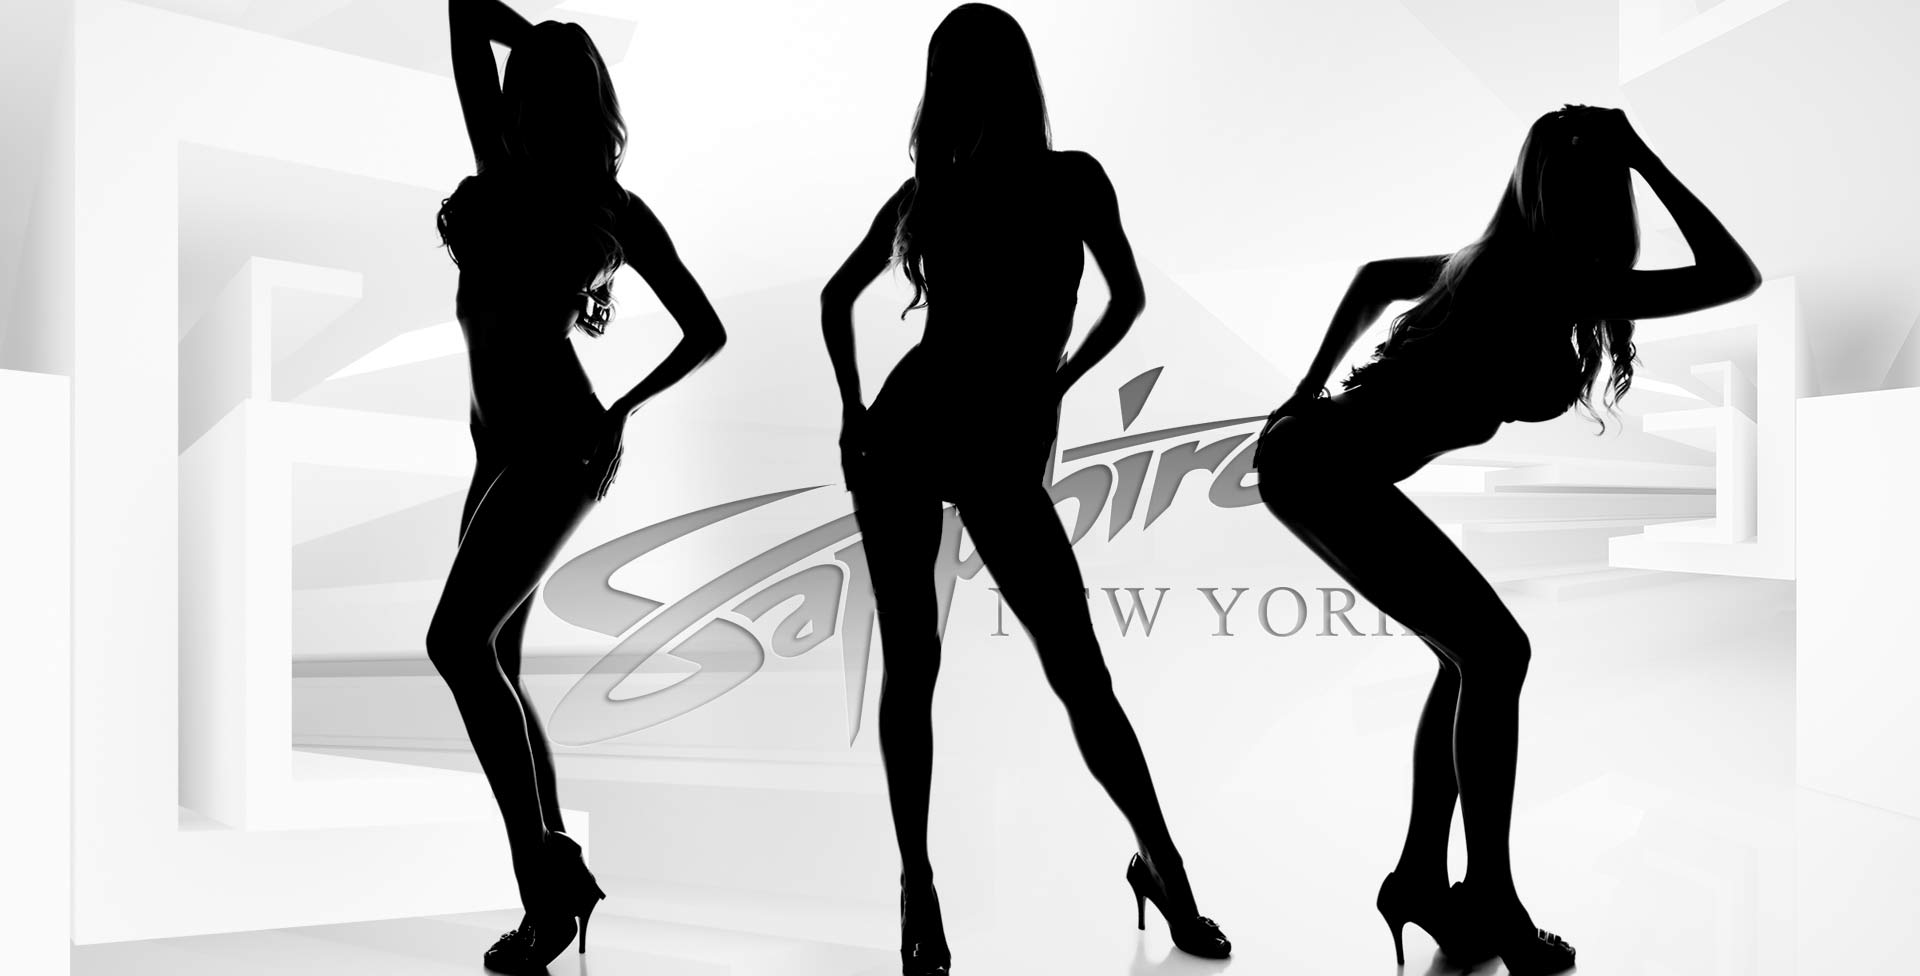 Sapphire New York Upscale Gentlemen's Club showcase the best entertainers from around the map